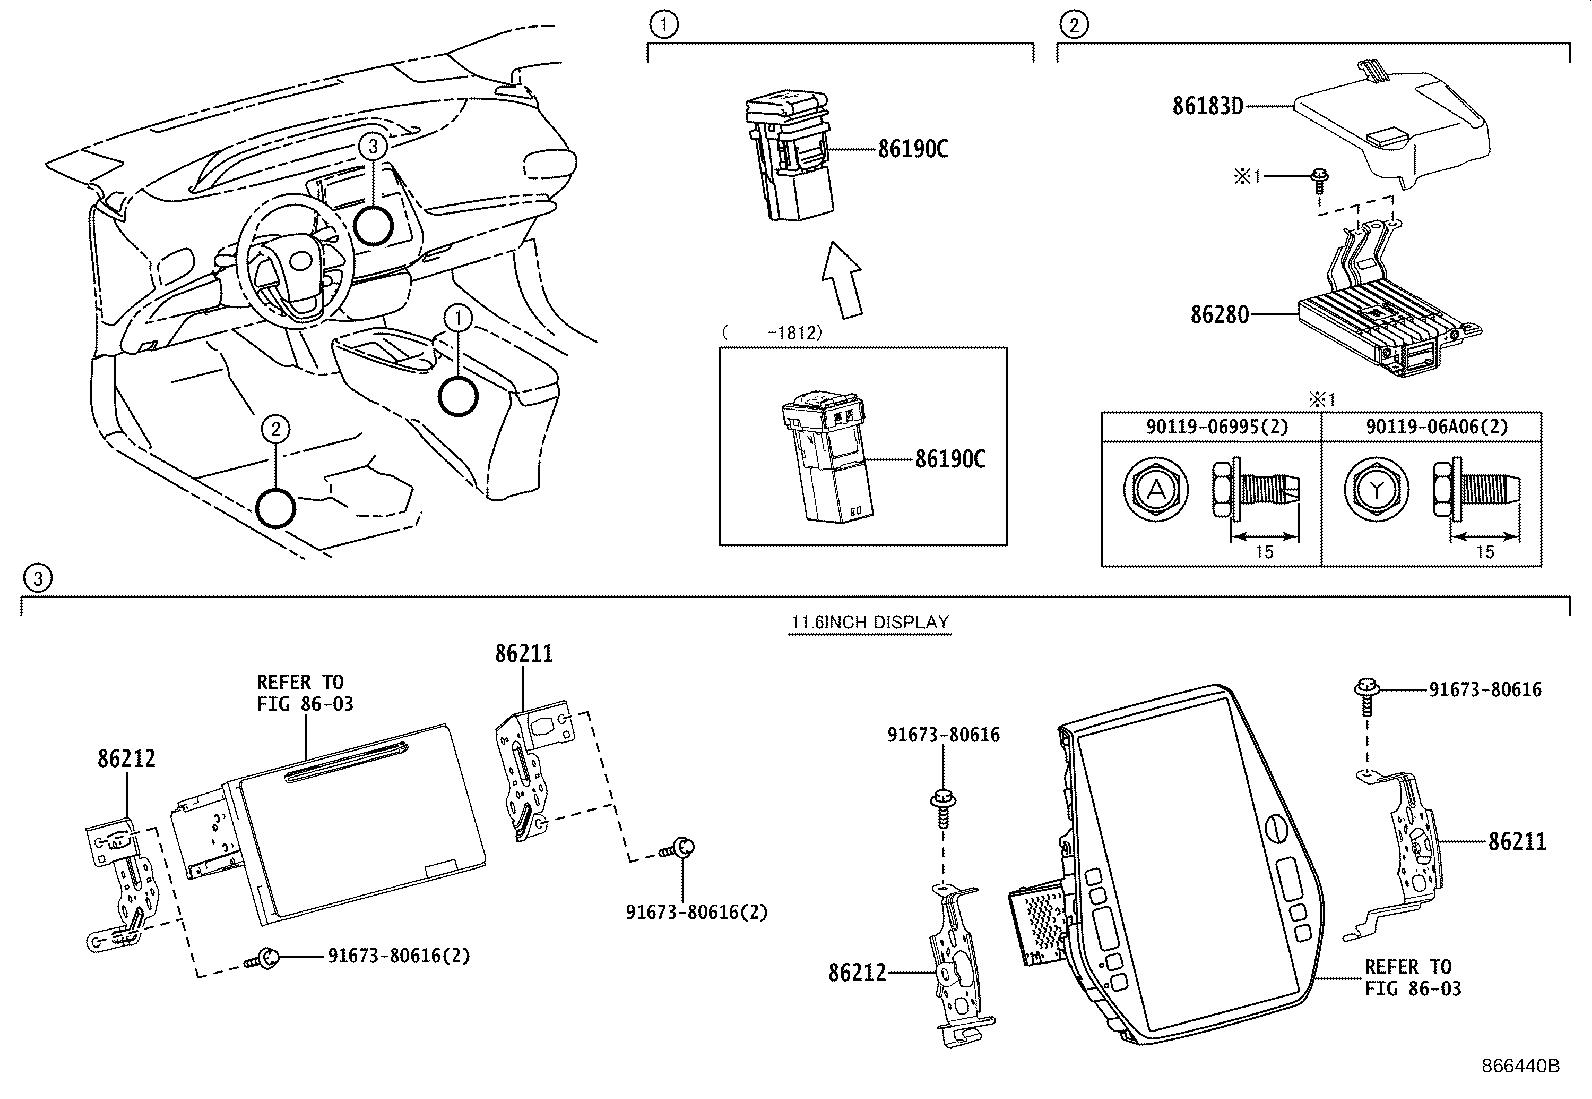 Chevy Impala Wiring Diagram Moreover 2013 Volvo C30 On Wiring Diagram